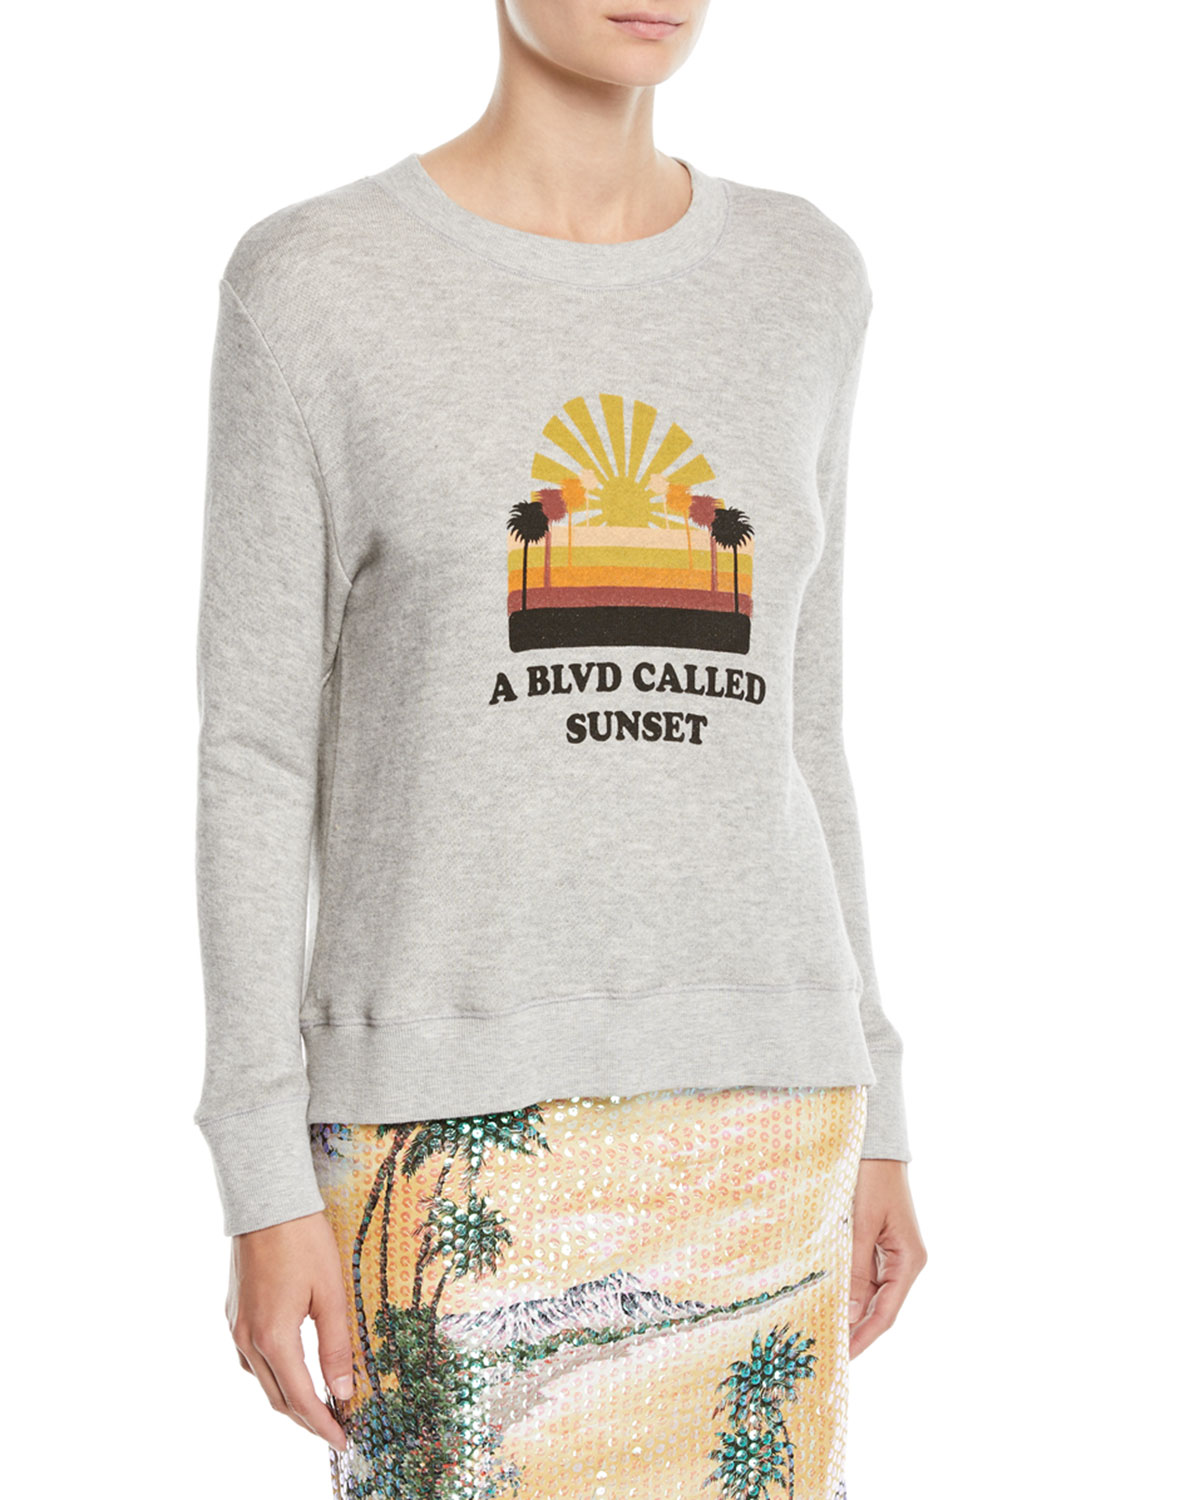 LE SUPERBE Bay St. Graphic Pullover Sweatshirt in Sunset Blvd